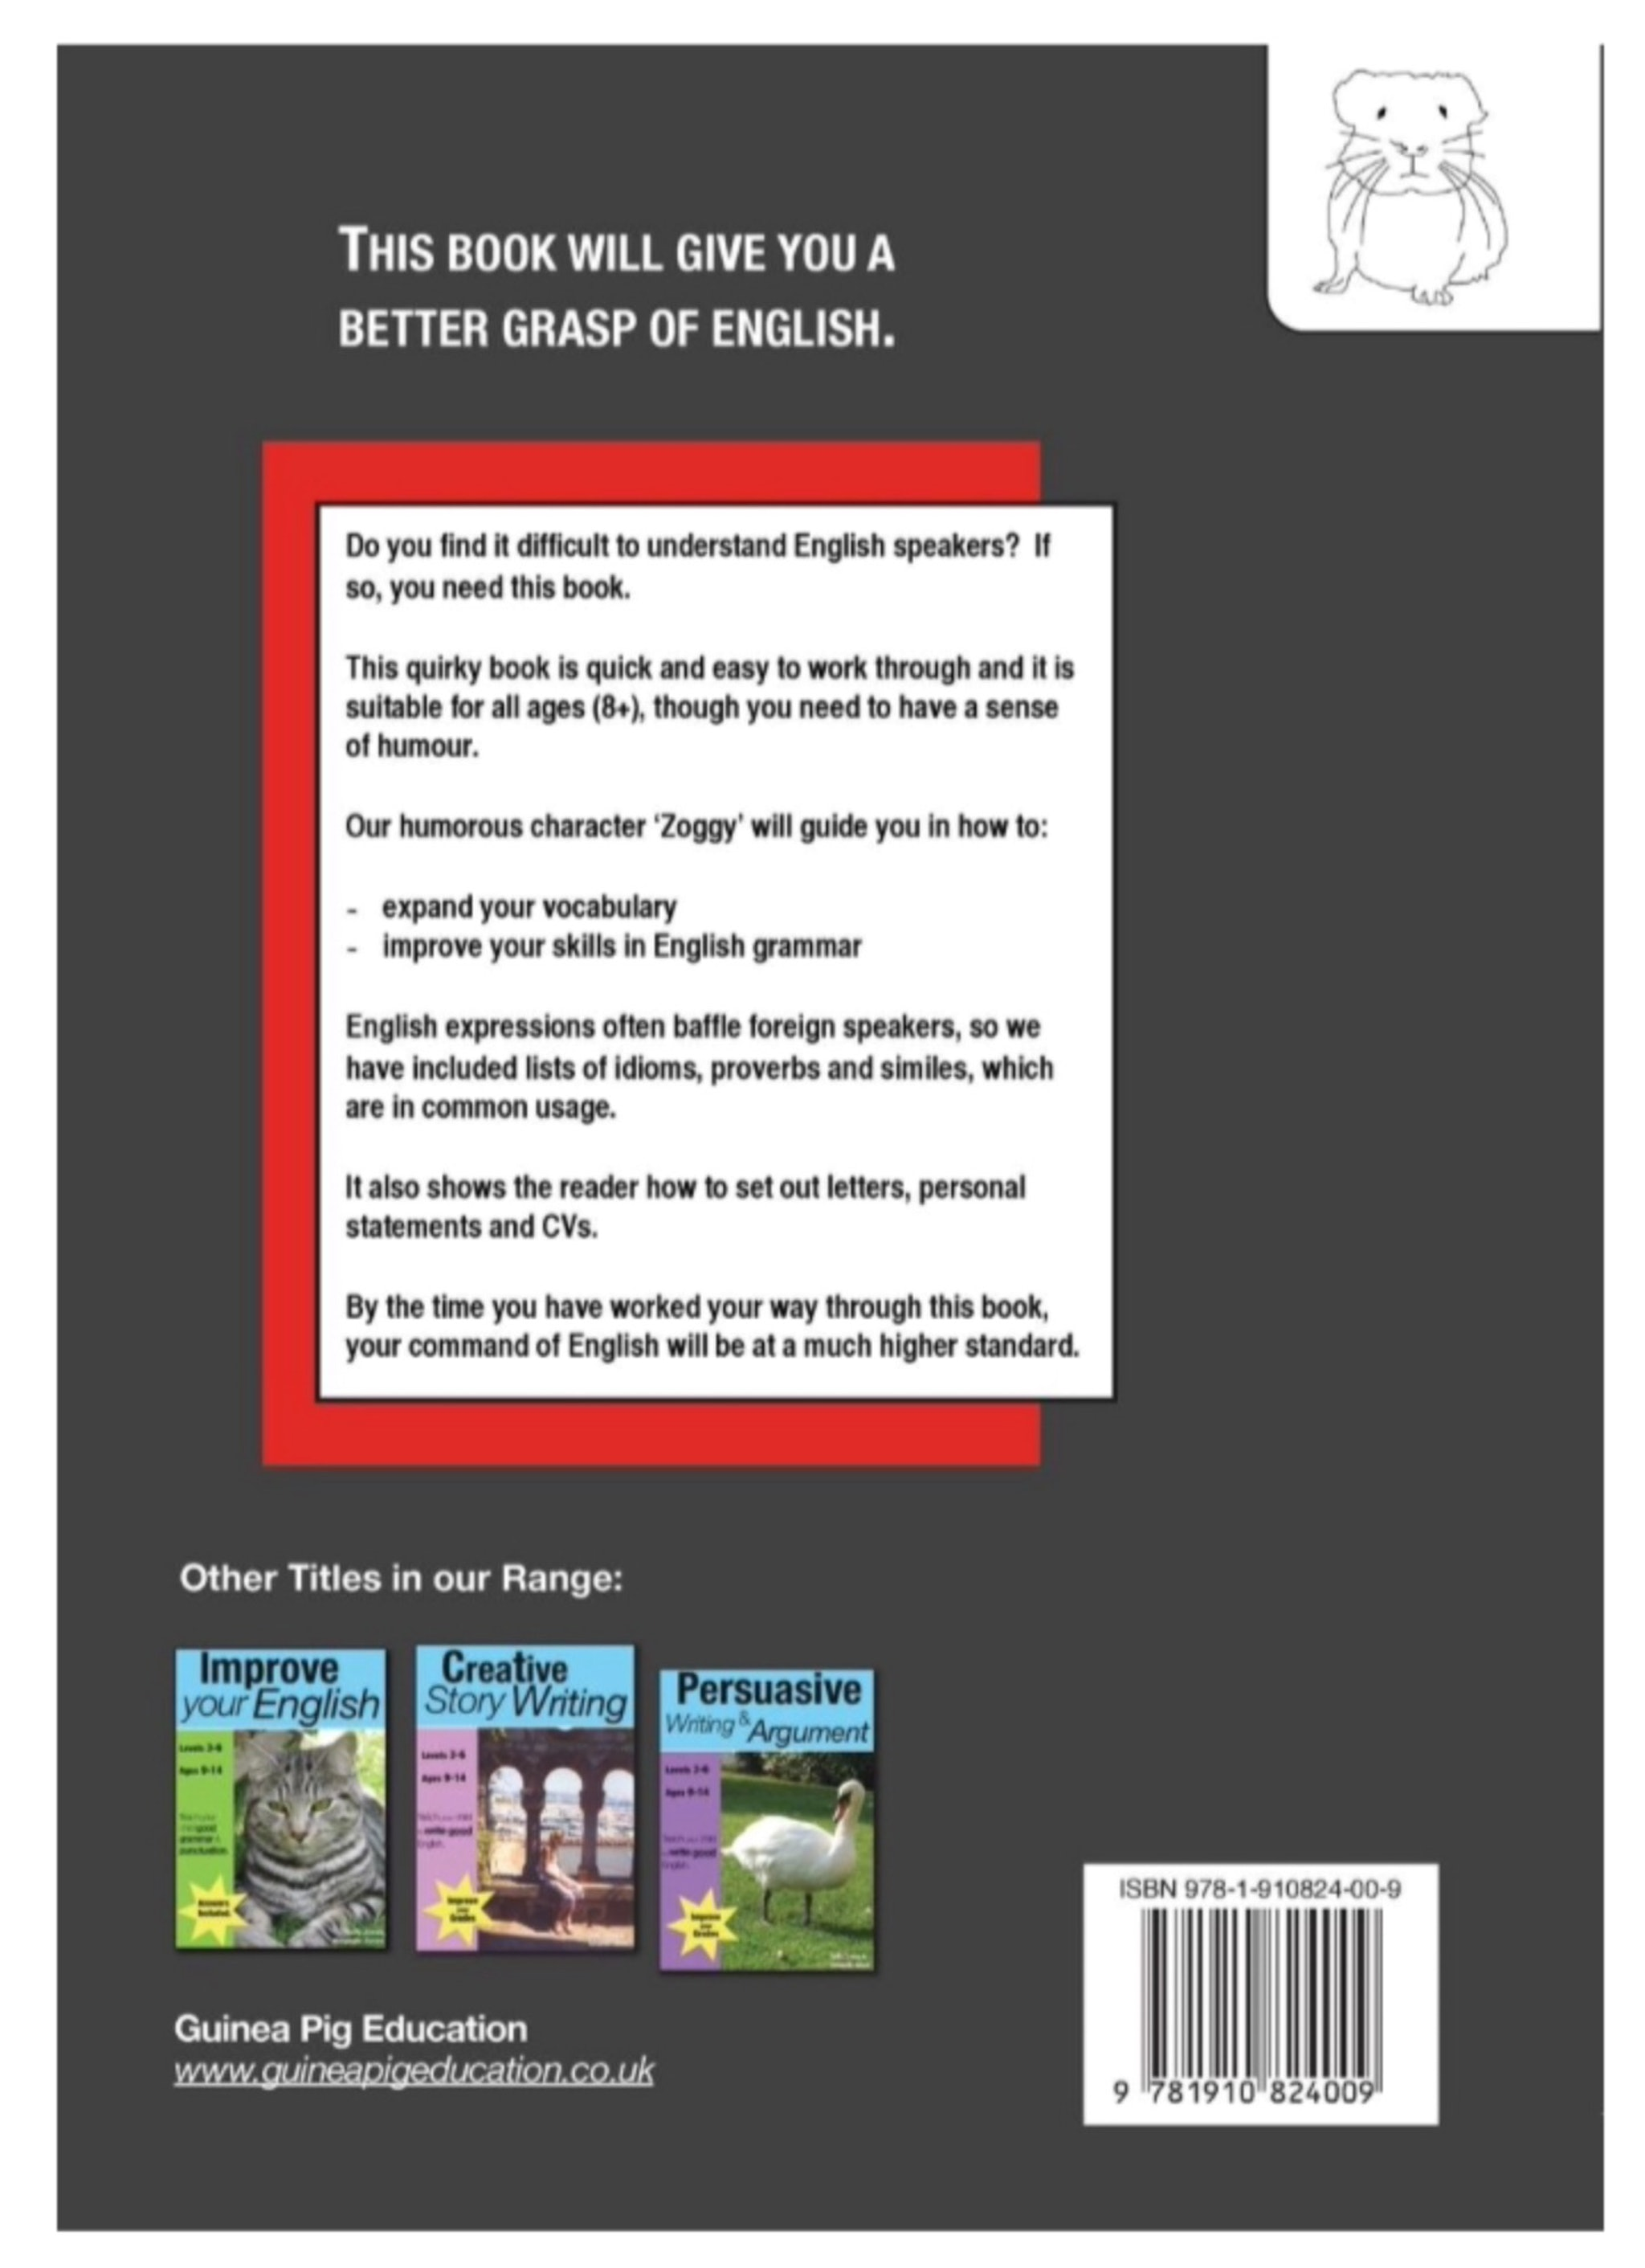 Improve Your English As A Foreign Language: The Ultimate Guide 8+ - Guinea  Pig Education Shop